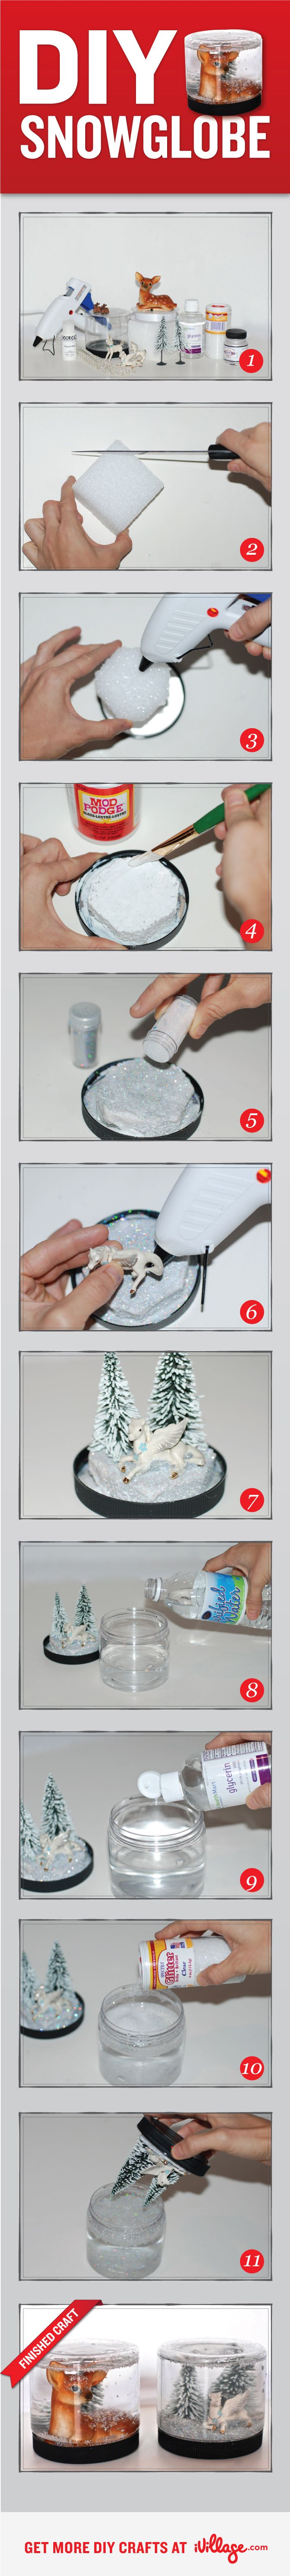 Learn how to make your own snow globe with our easy DIY #craft project. http://www.ivillage.com/diy-snow-globe/7-a-501266?cid=pin|crafts|snowglobe|11-26-12